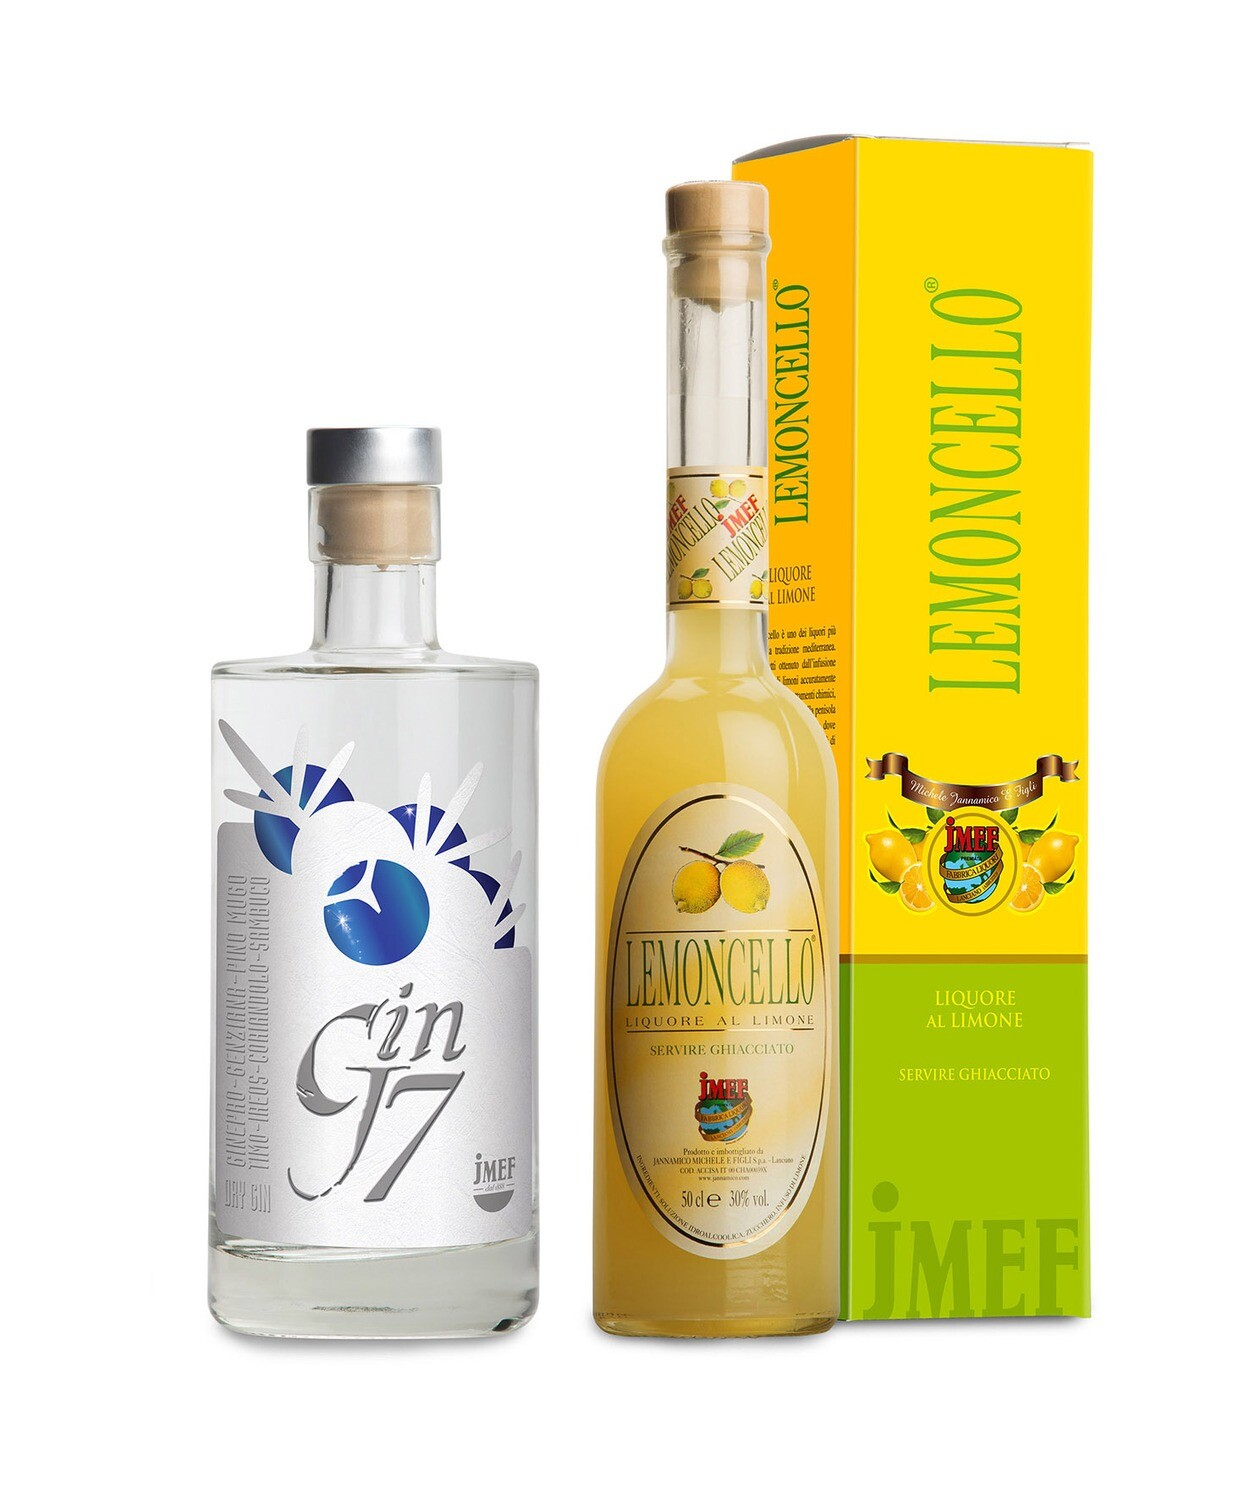 - PACCHETTO - Ready for summer! | Gin J7+ Lemoncello | JMEF